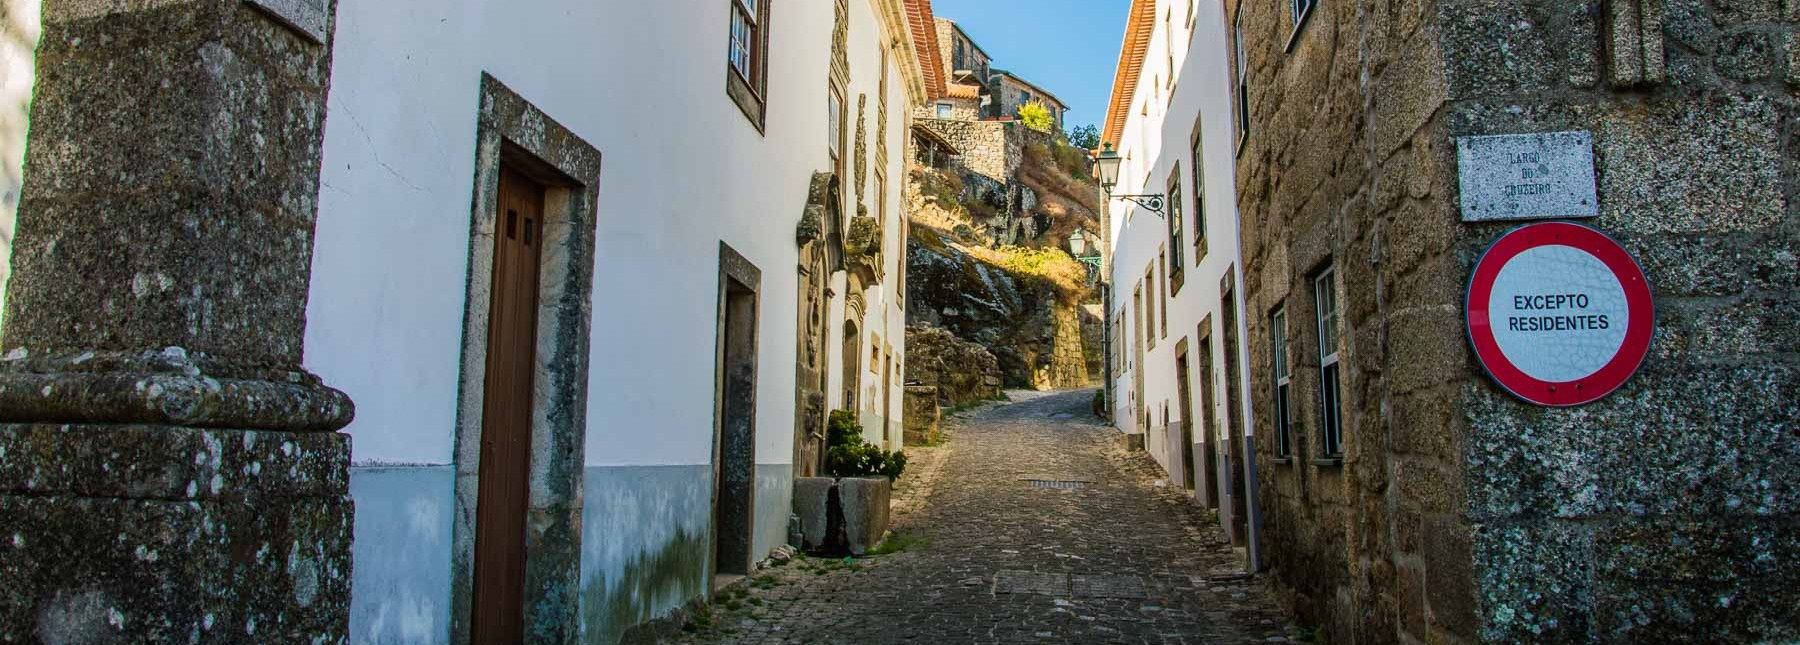 What You Need to Know About Renting a Car in Portugal | Earth Trippers